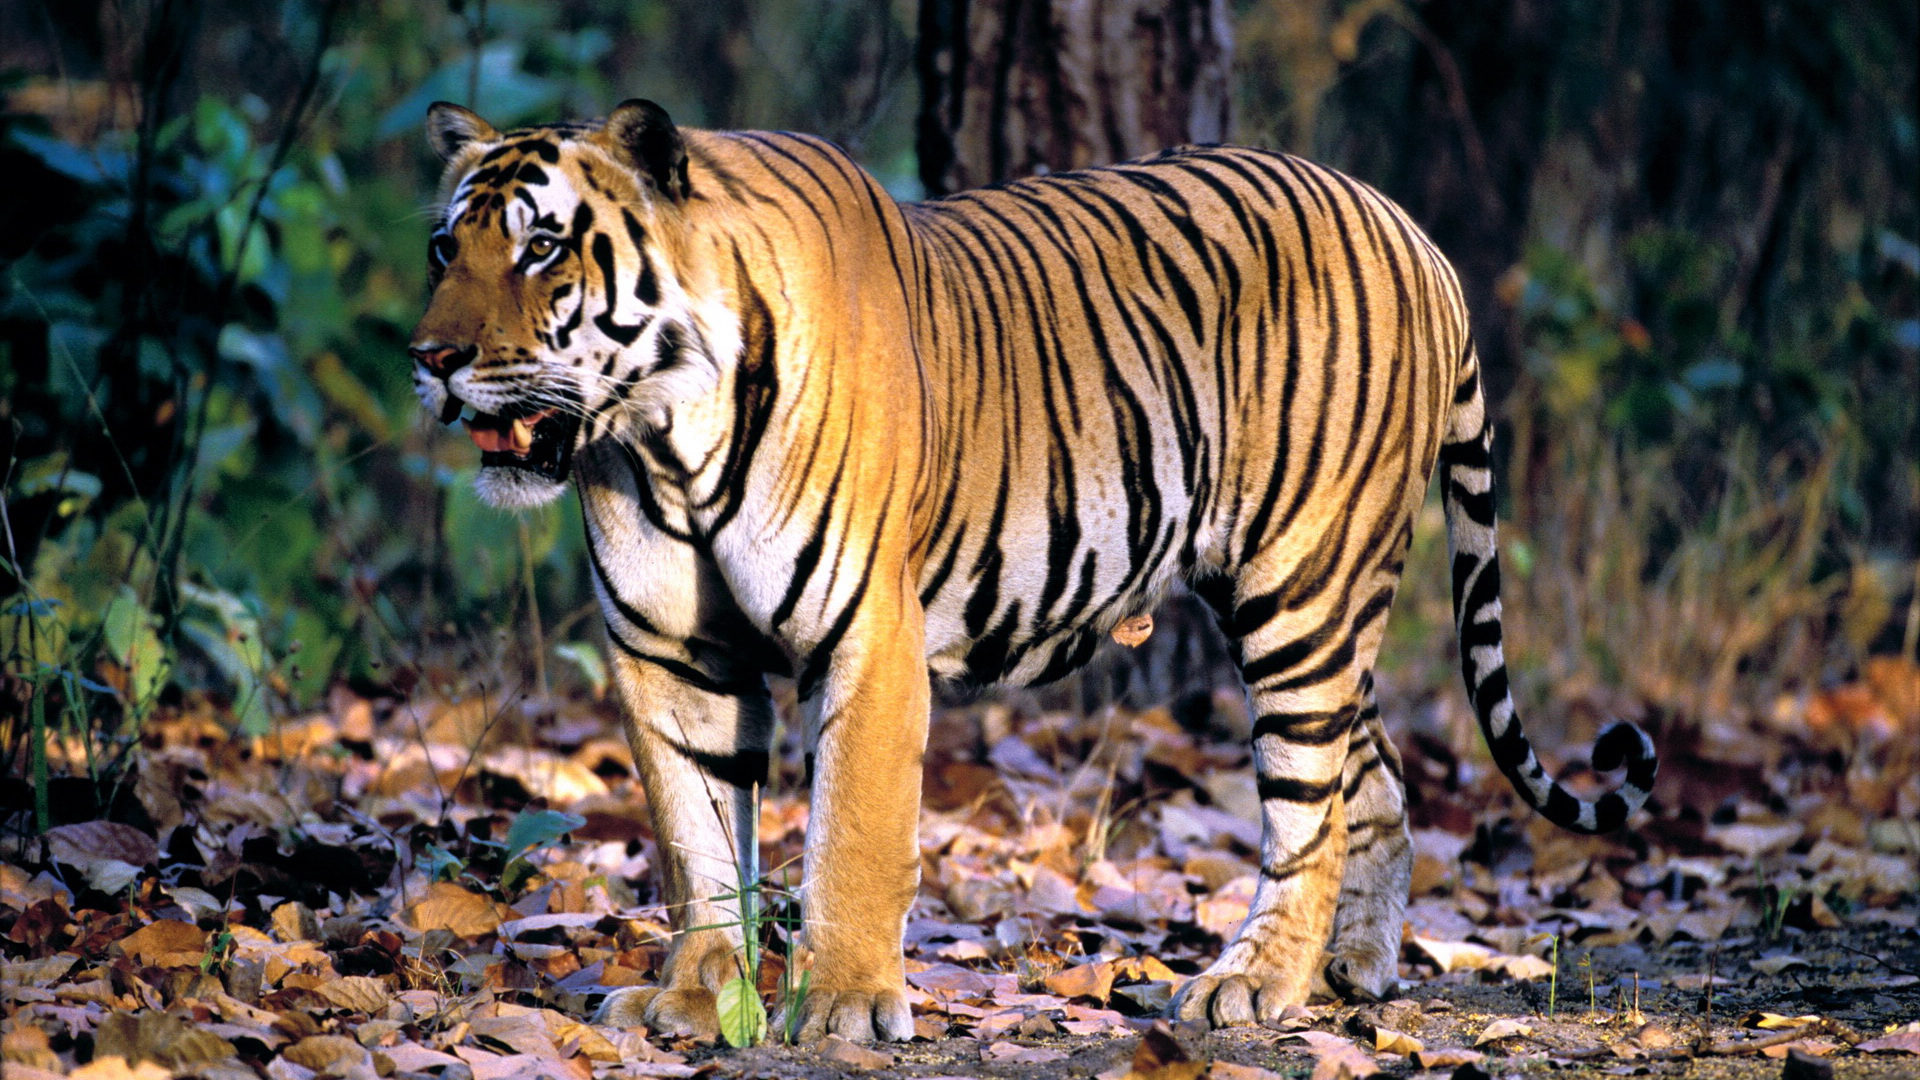 Wallpaper Wiki Bengal Tiger Background Full Hd Pic Wpb002203